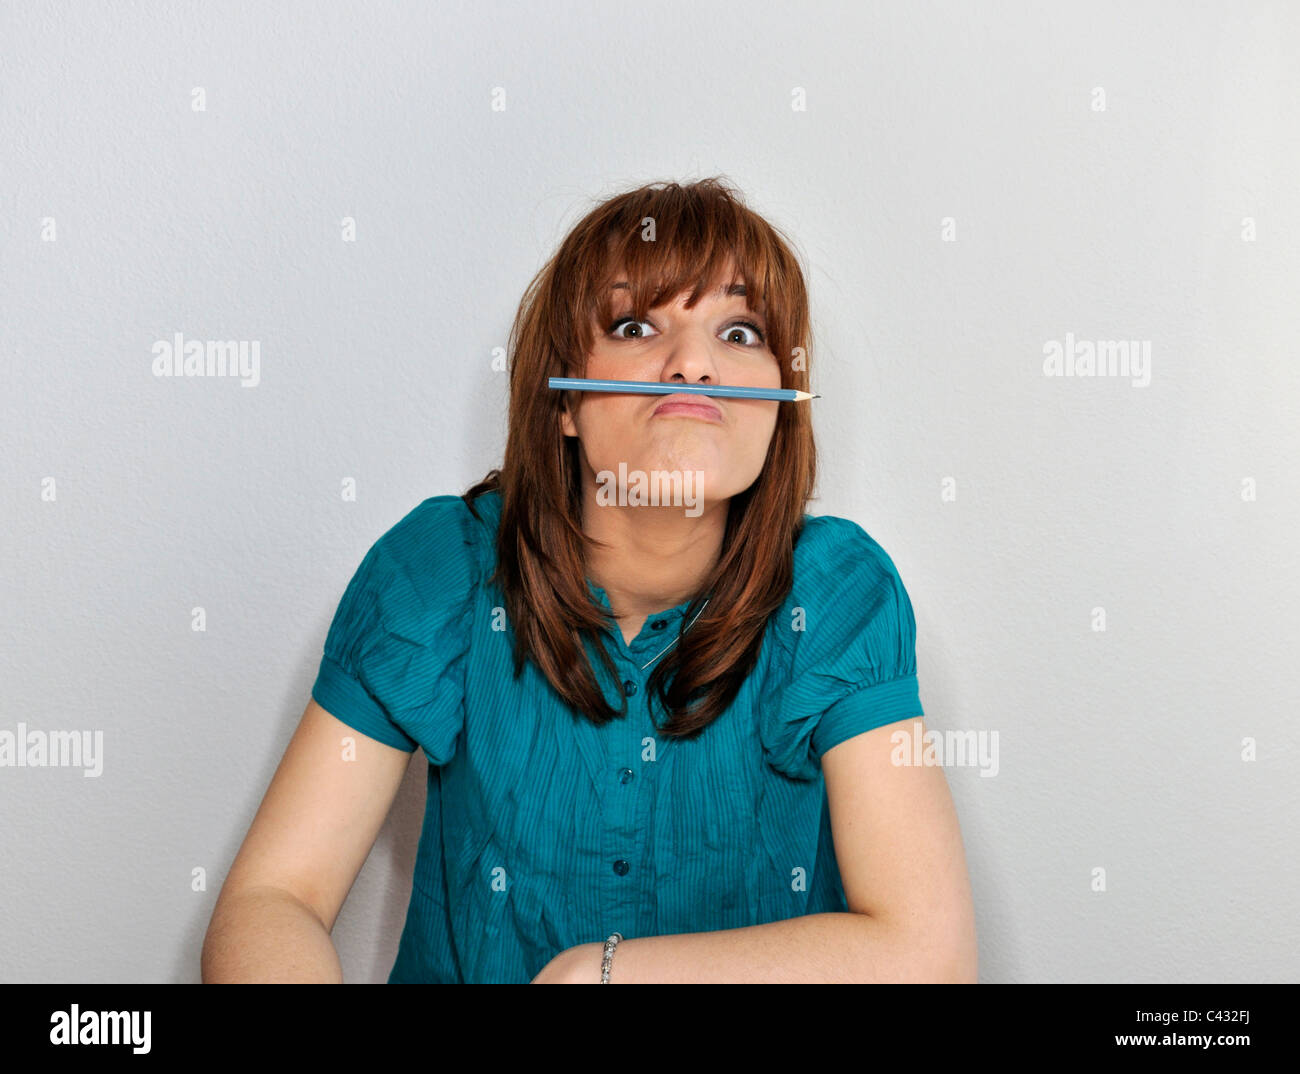 Young woman with pencil between lip and nose - Stock Image